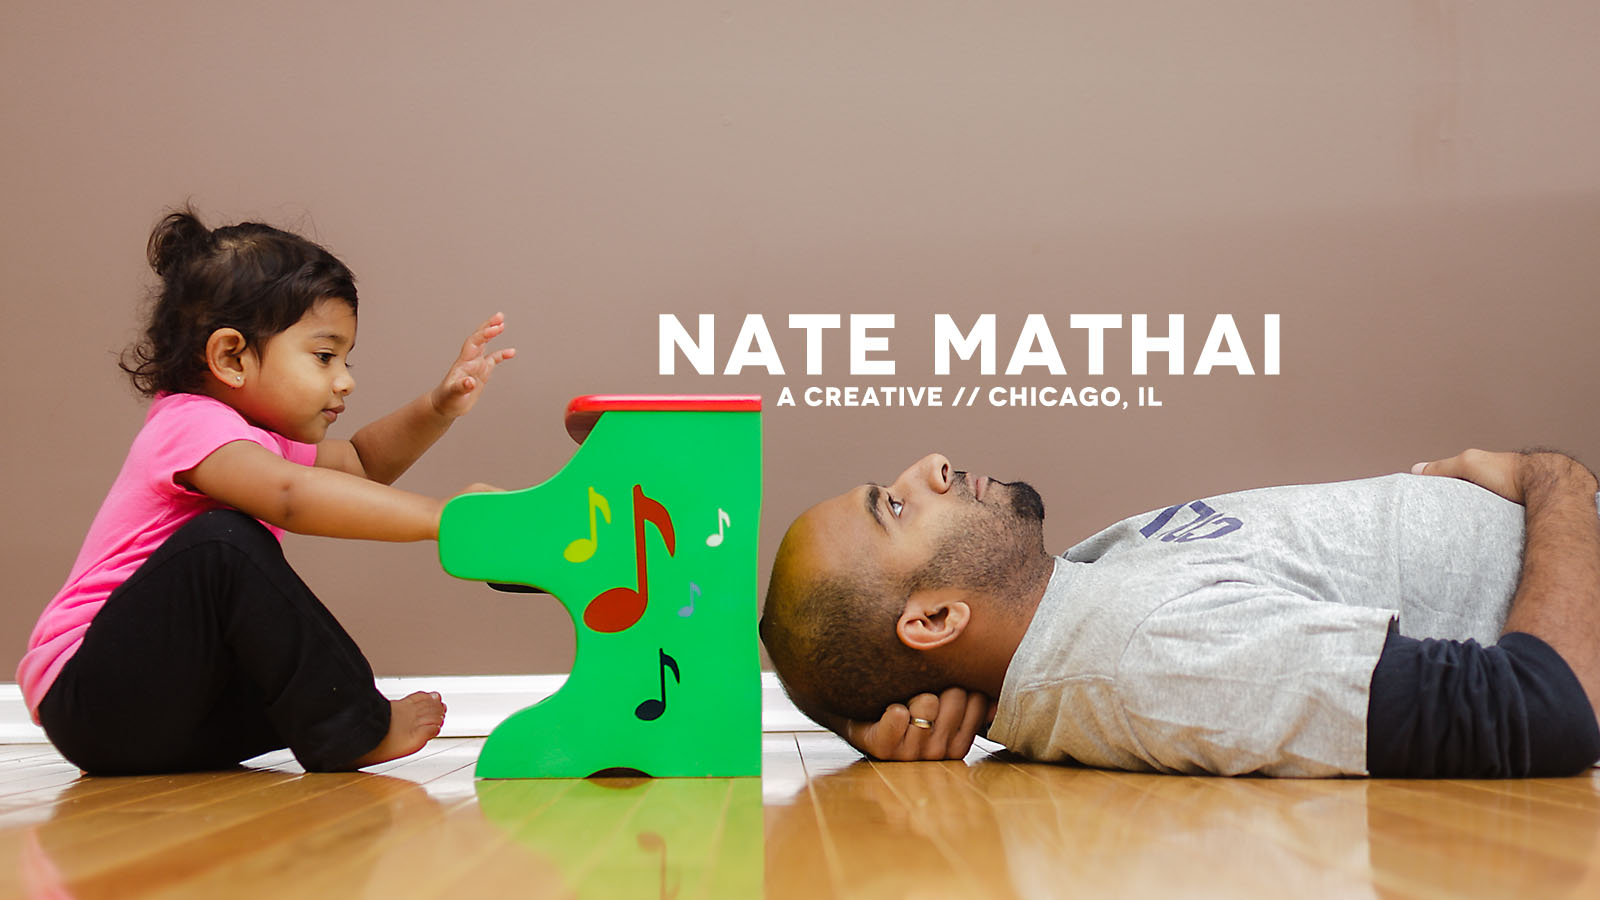 top image for Good To The Last Drop by chicago wedding photographer nate mathai